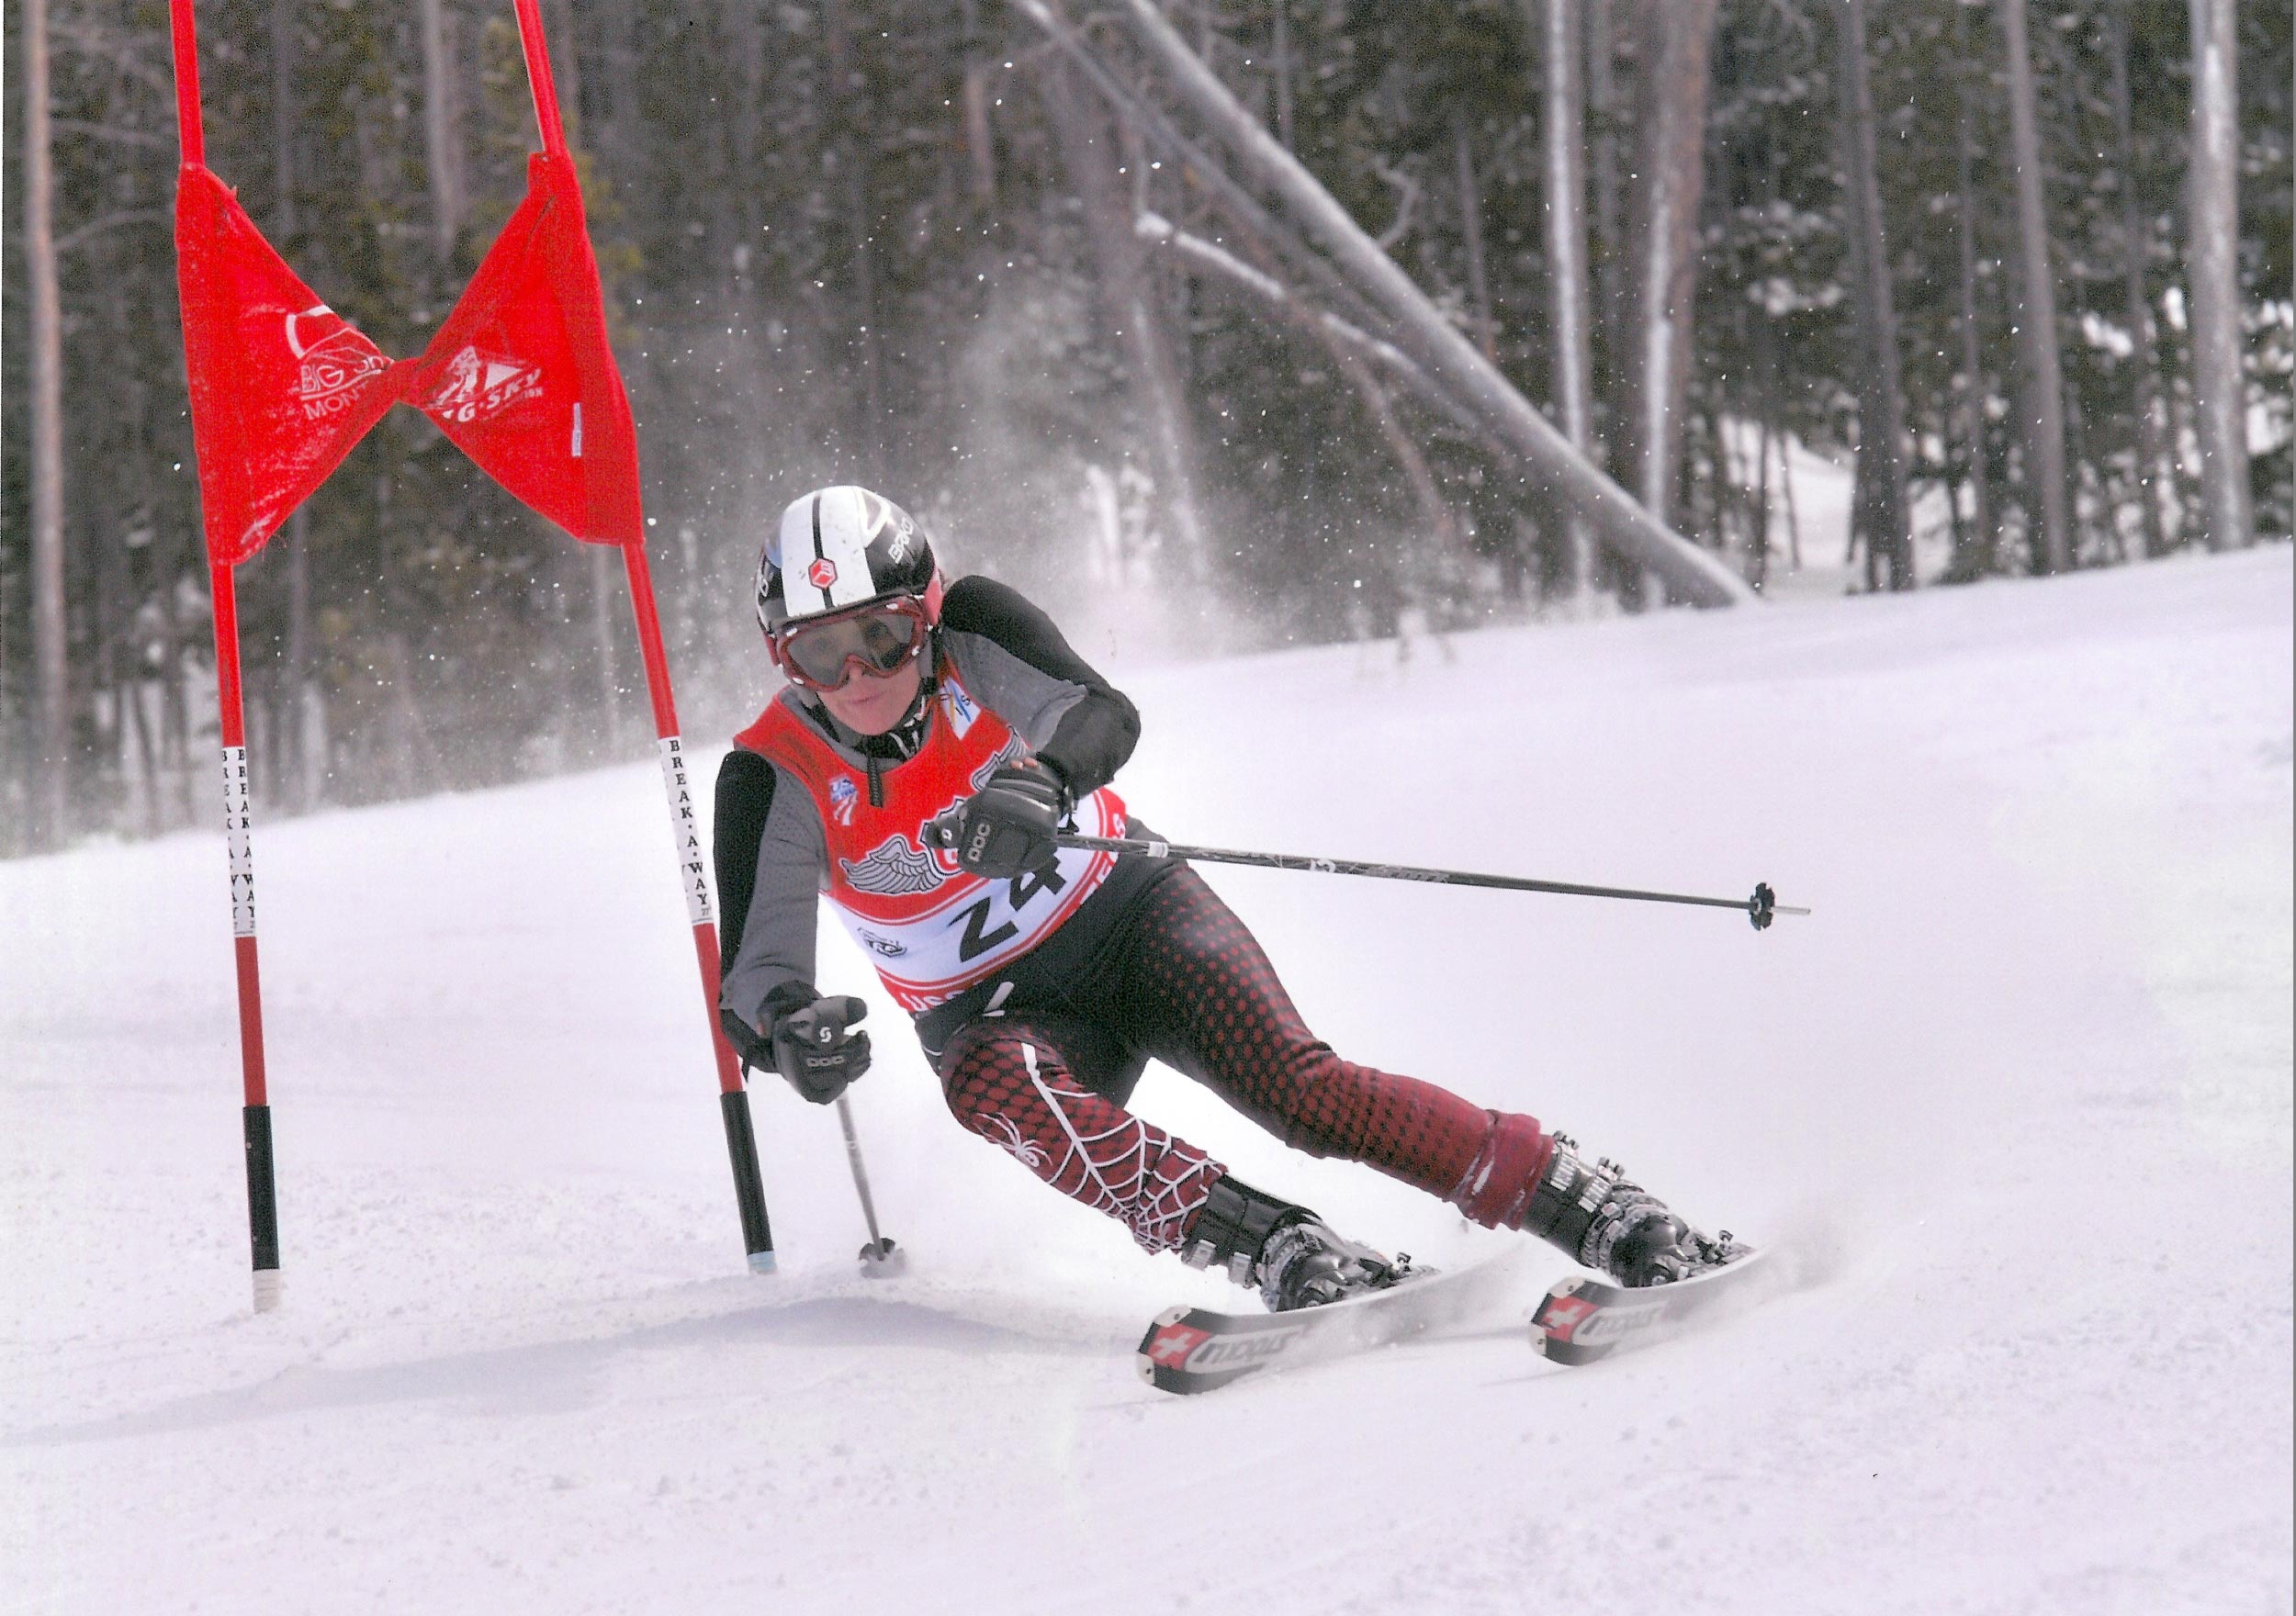 ALanzel_Ski-racing_2012-US-masters-nationals